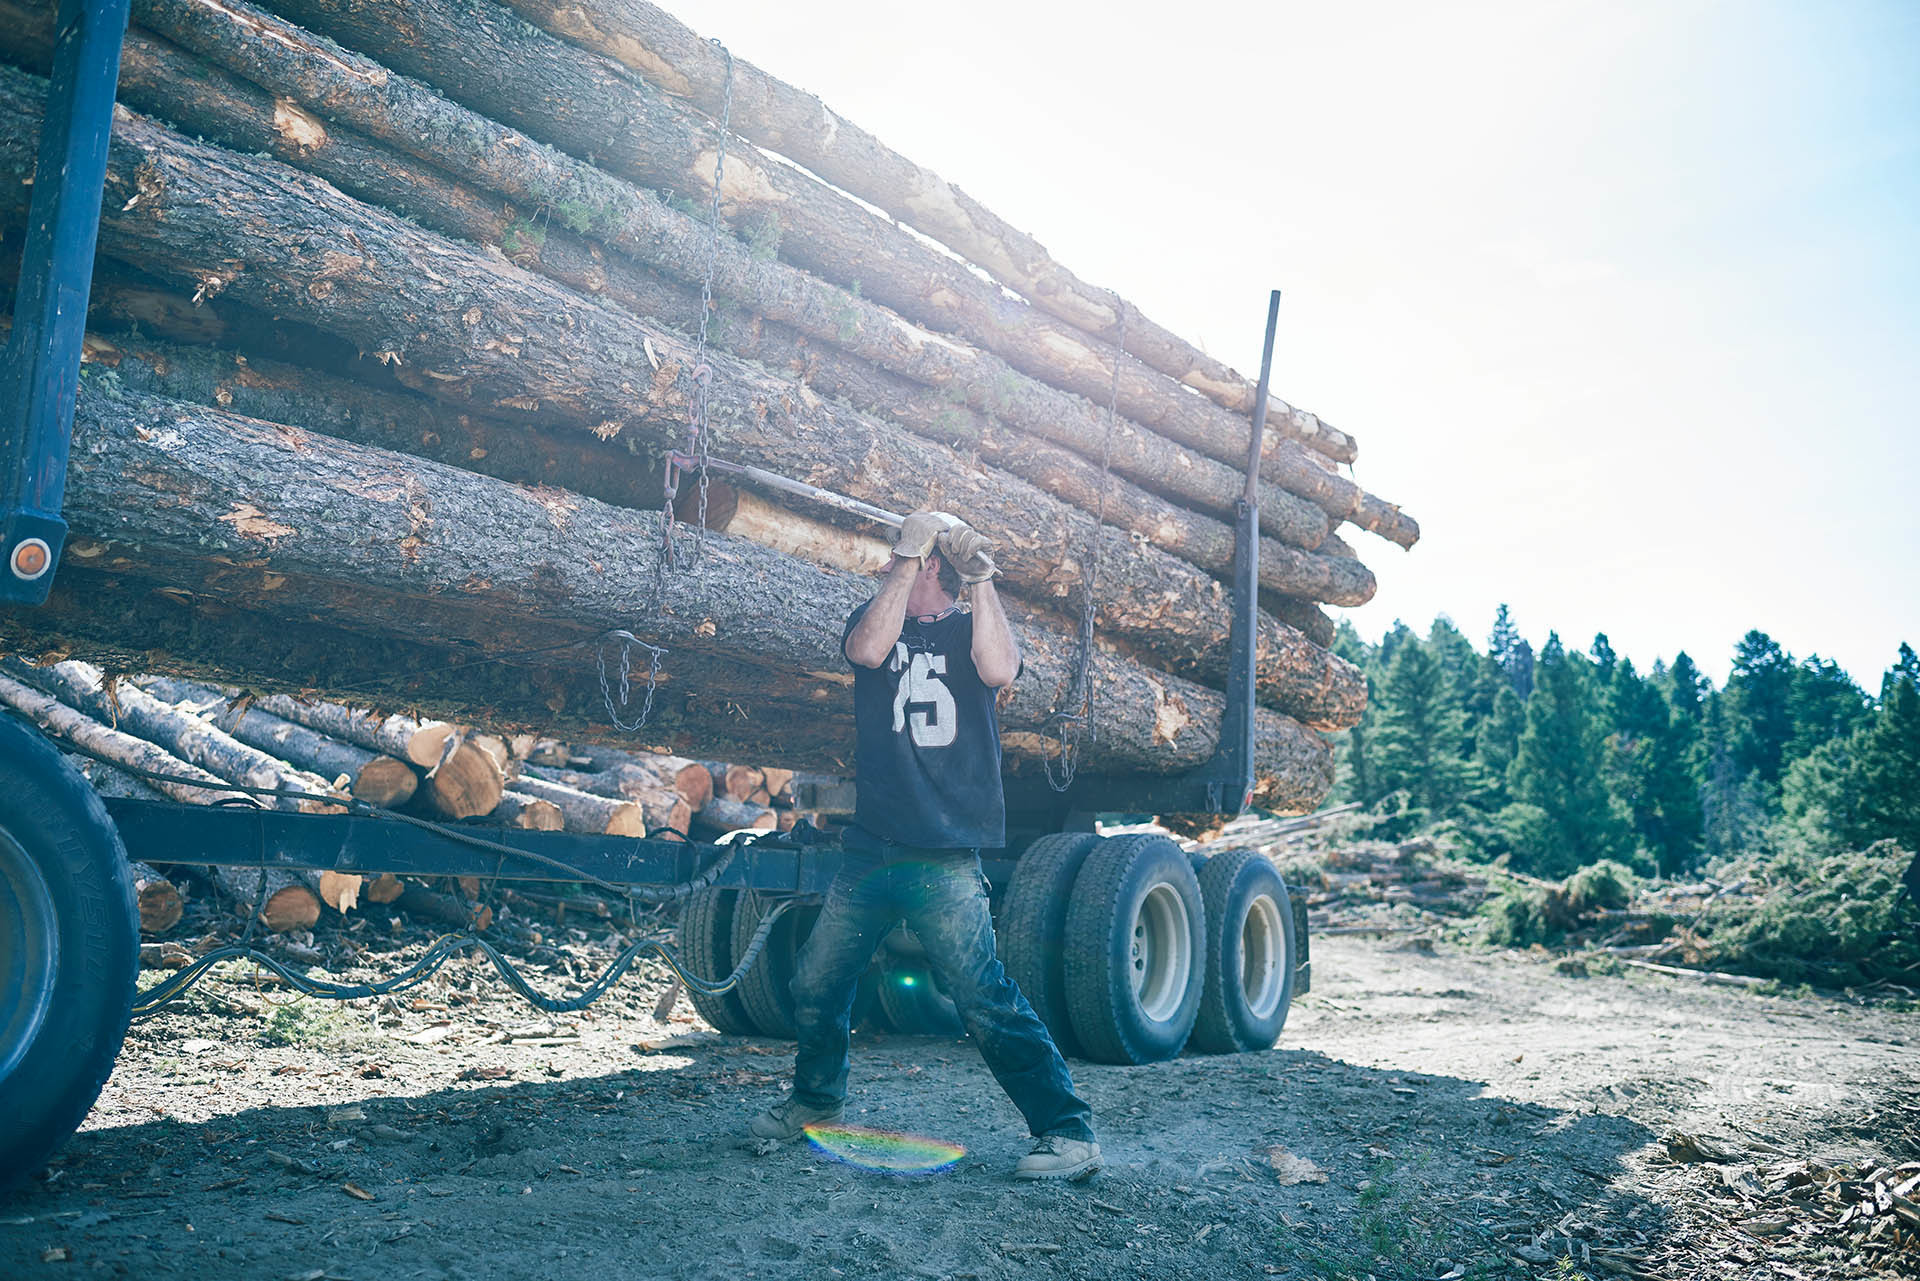 14_dw_1608_valvolineHD_logging_working_1406_comp_1920pxl